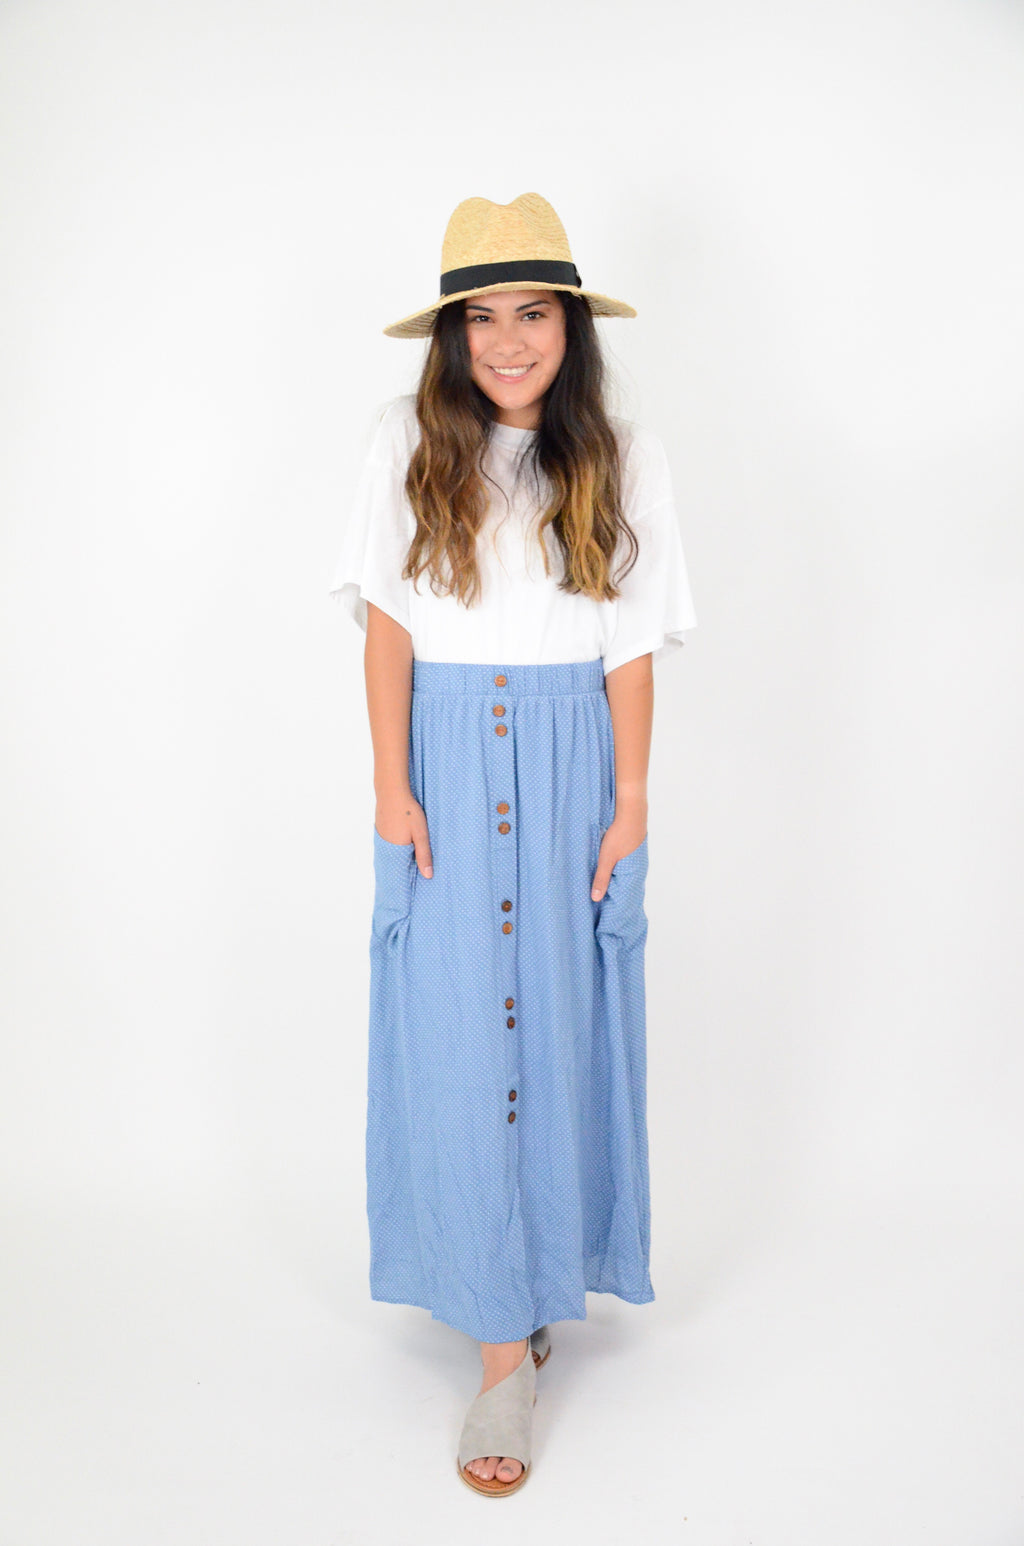 The Sydney Polka Dot Maxi Skirt